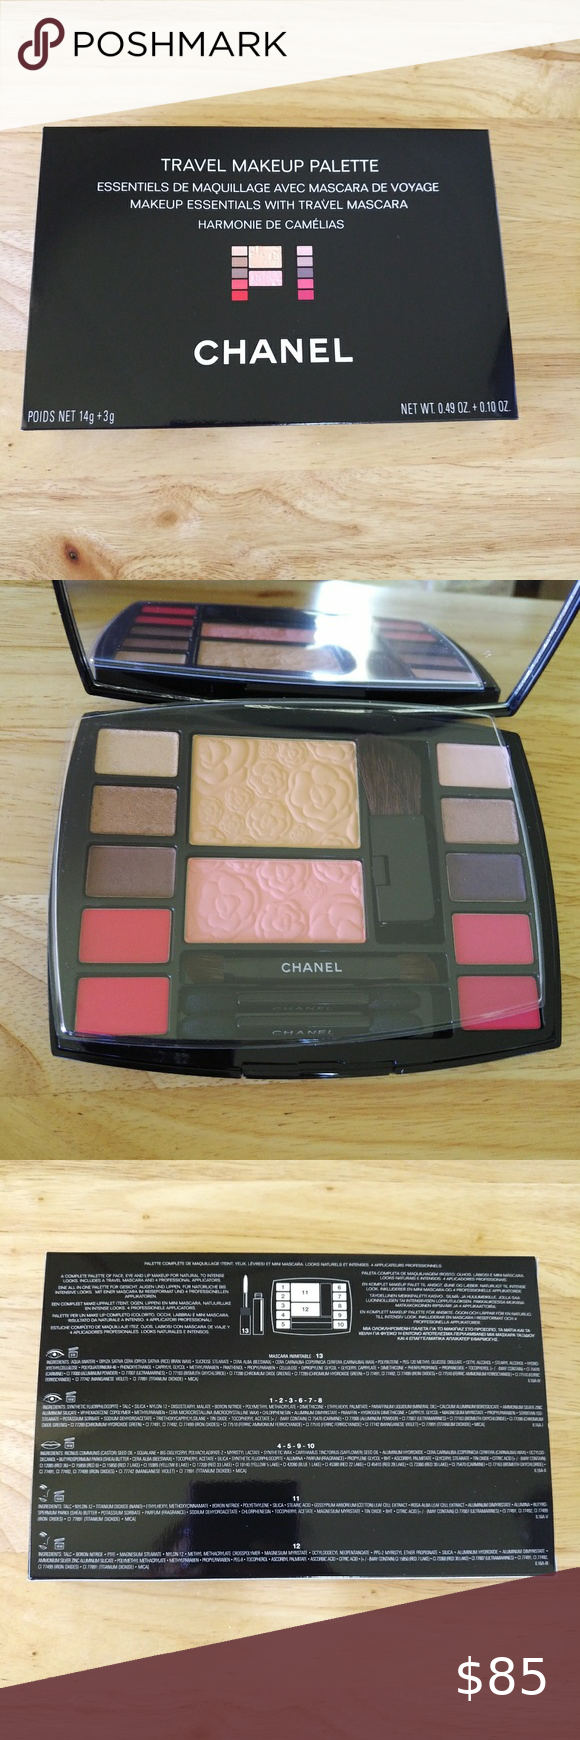 Chanel Travel Makeup Palette Brand New in Box in 2020